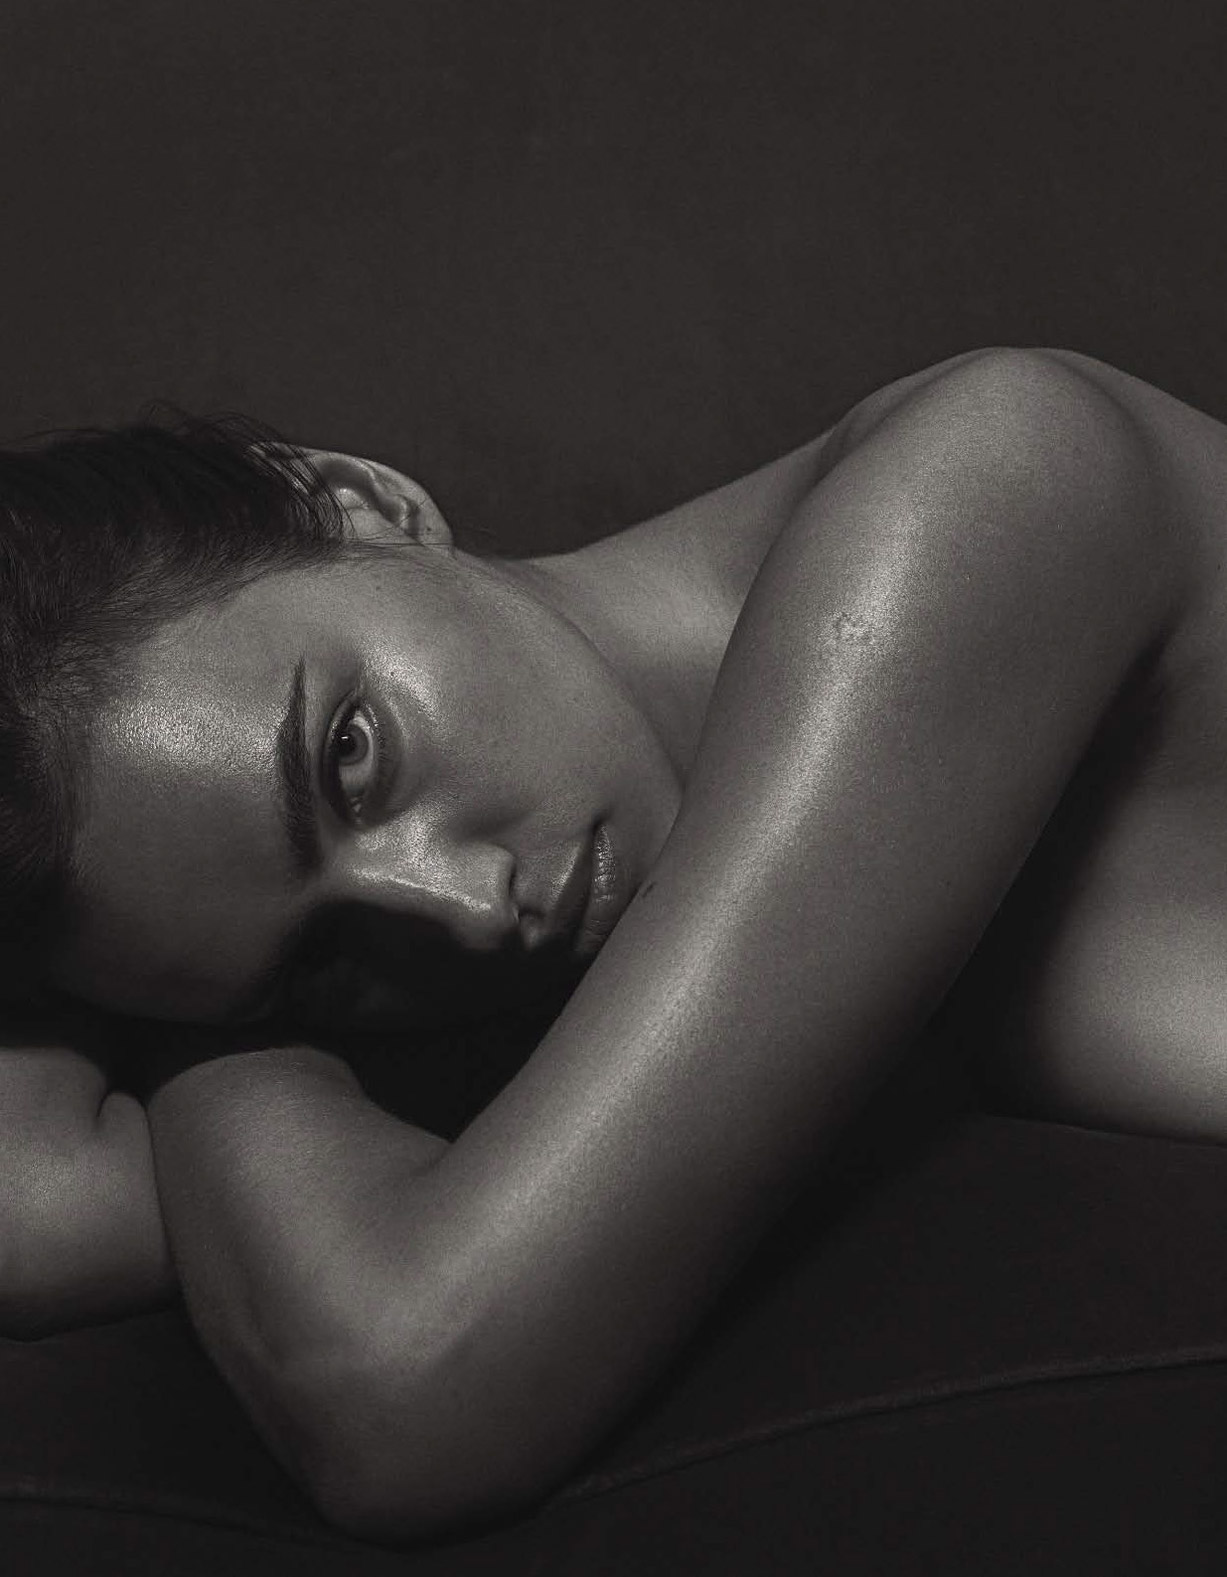 обнаженная Ирина Шейк / Irina Shayk nude by Mario Sorrenti - GQ Italia september 2016